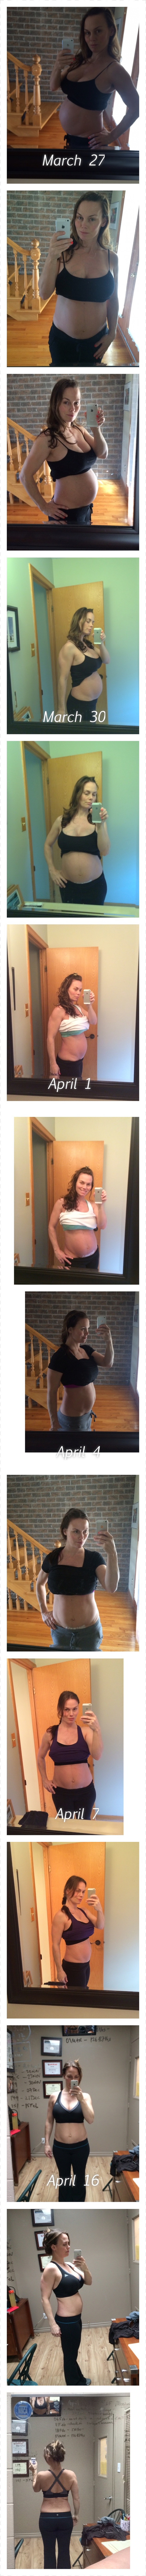 Post Pregnancy - The Road Back to Me.